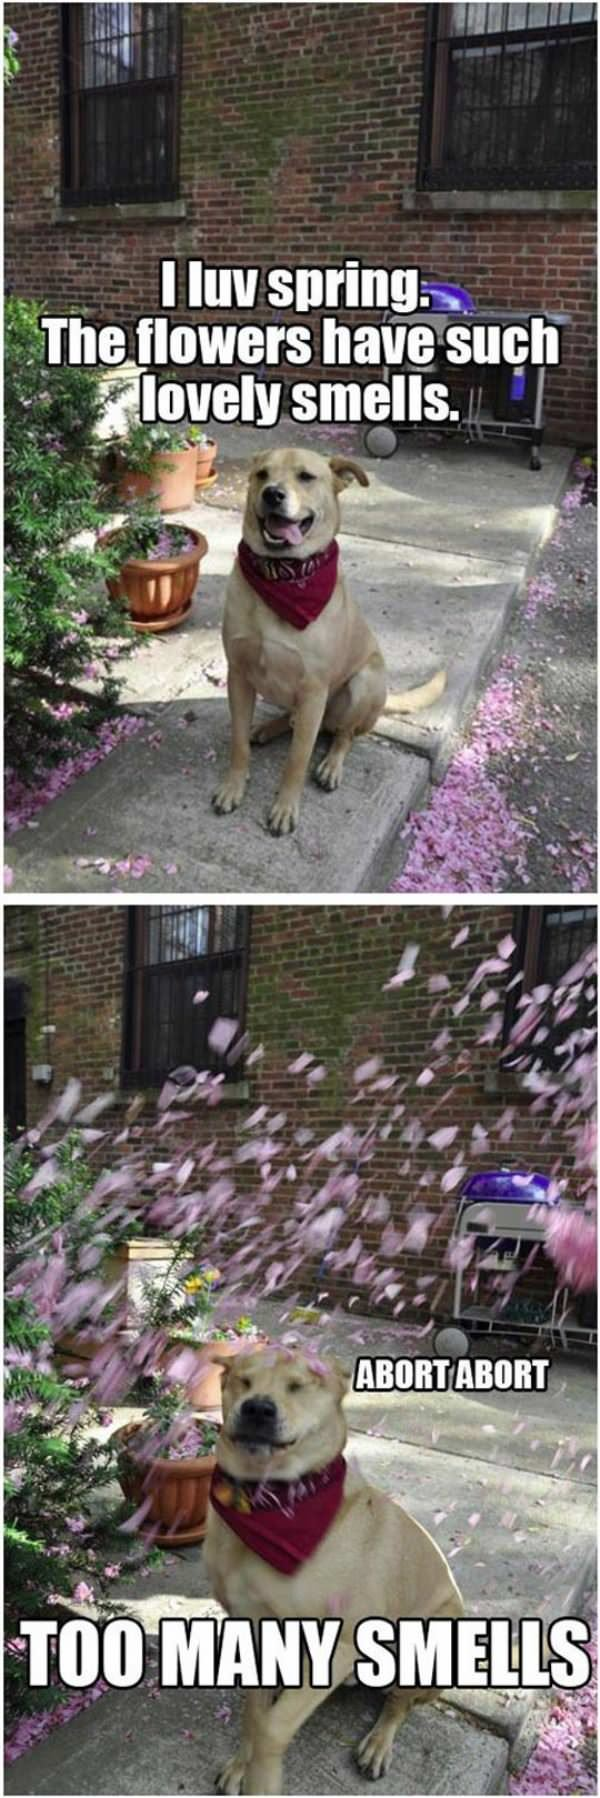 i really love the spring funny picture